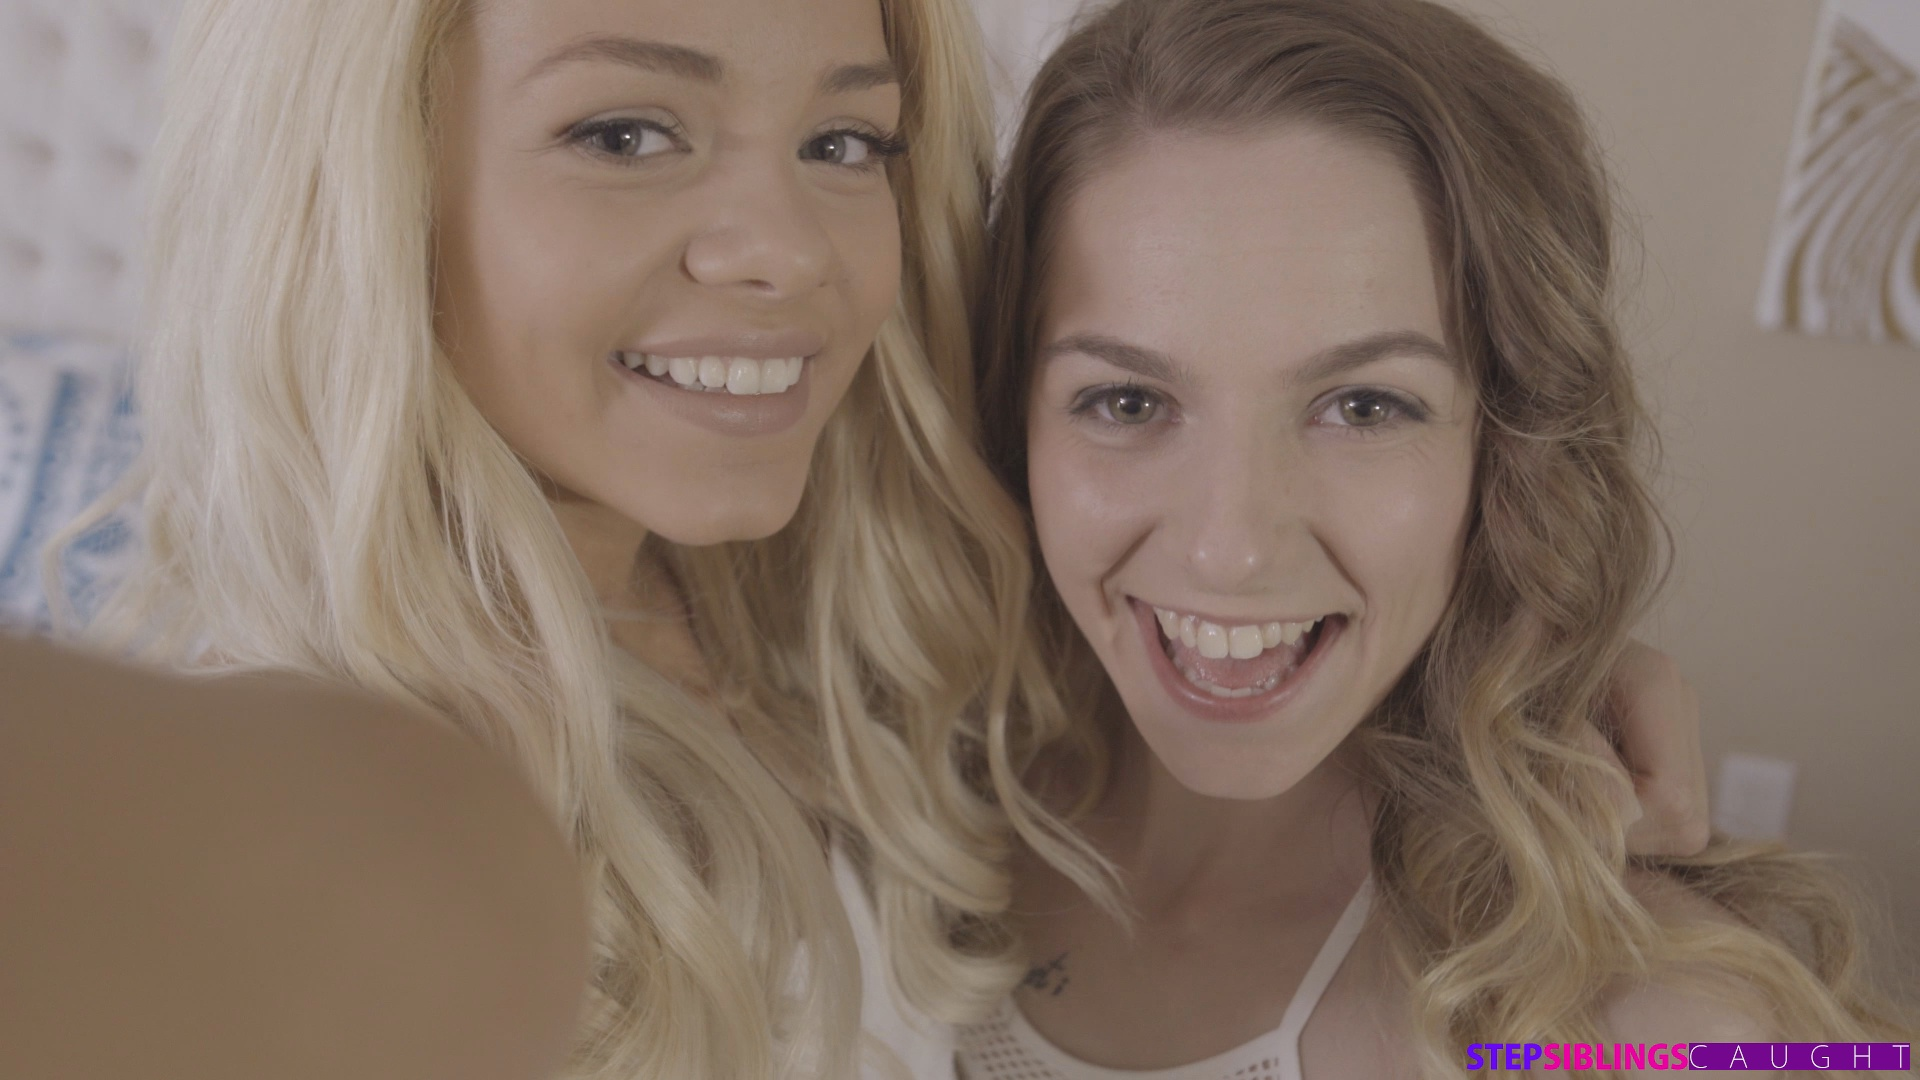 StepSiblingsCaught.com - Alana Summers,Elsa Jean: Step Brother Crashes Sisters Pajama Party - S5:E1